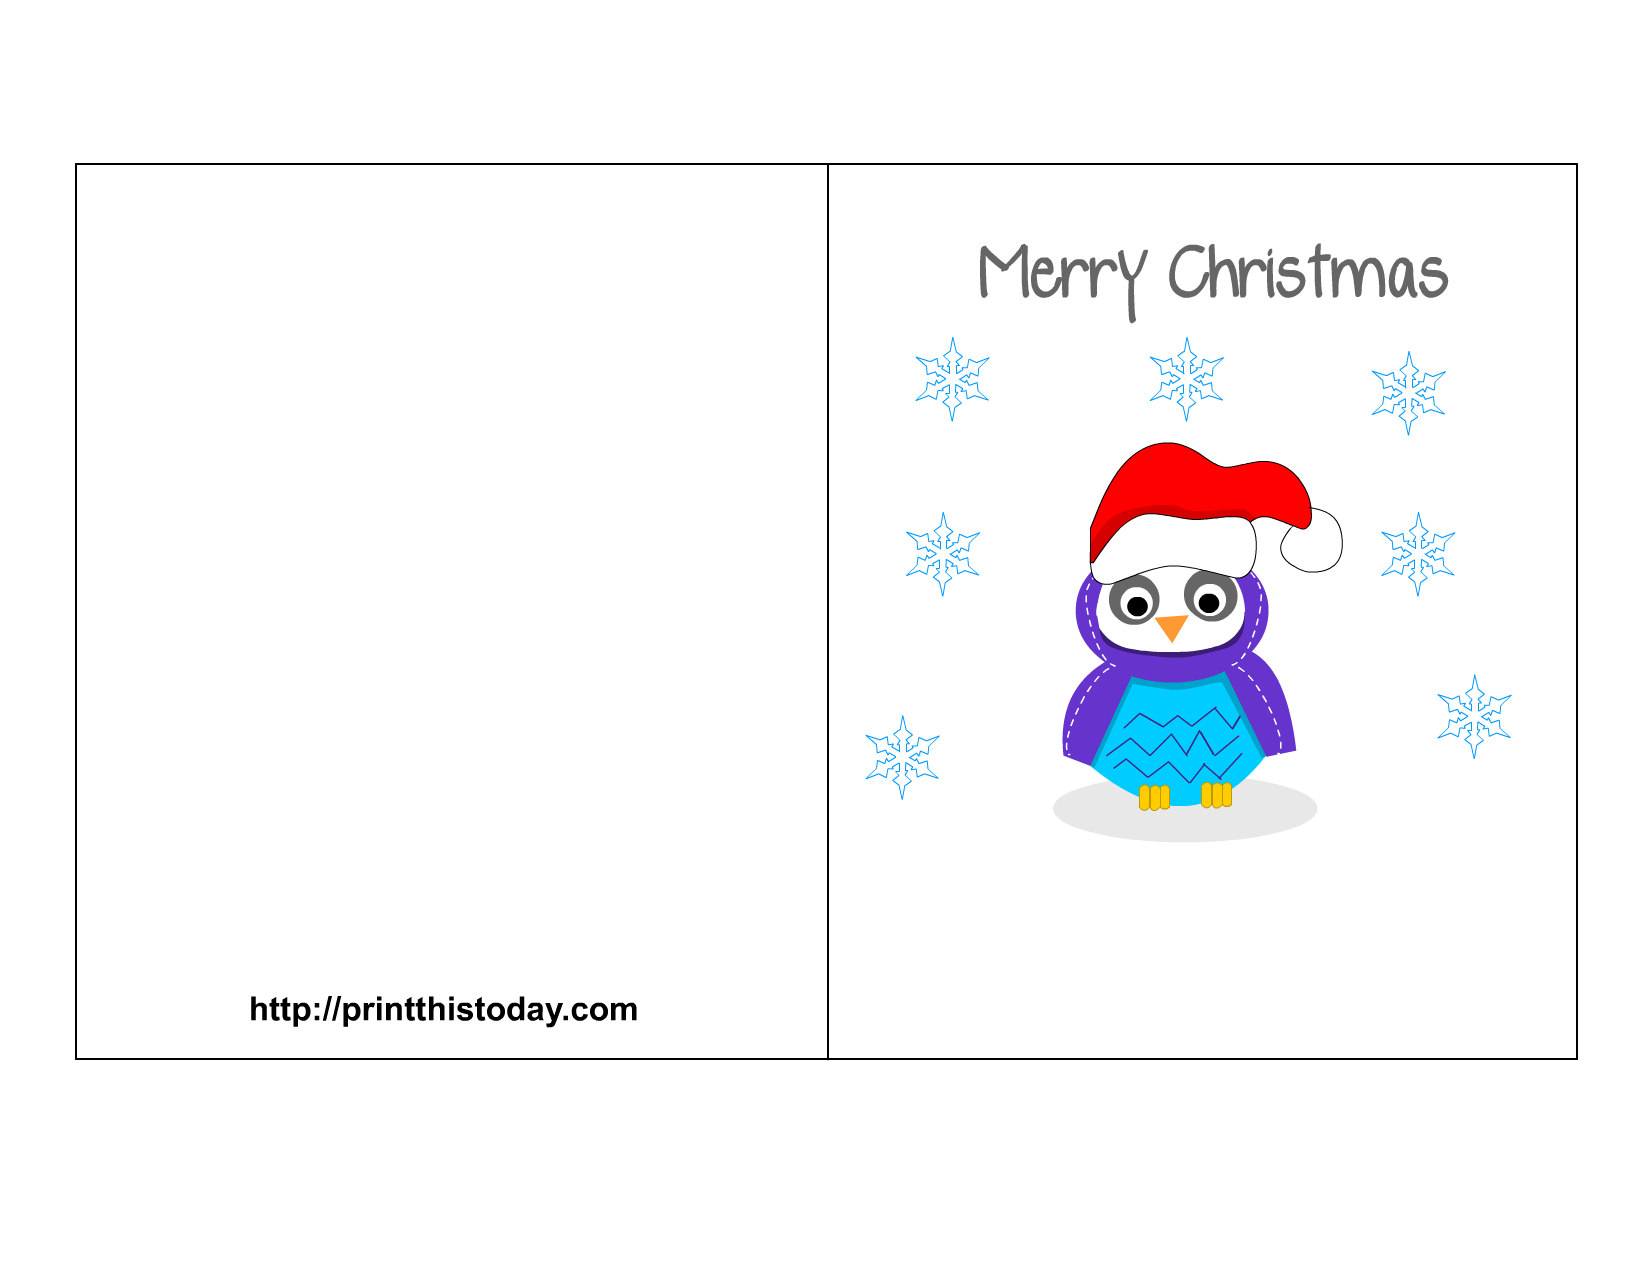 403 Permission Denied Free Printable Christmas Cards Printable Christmas Cards Owl Christmas Card